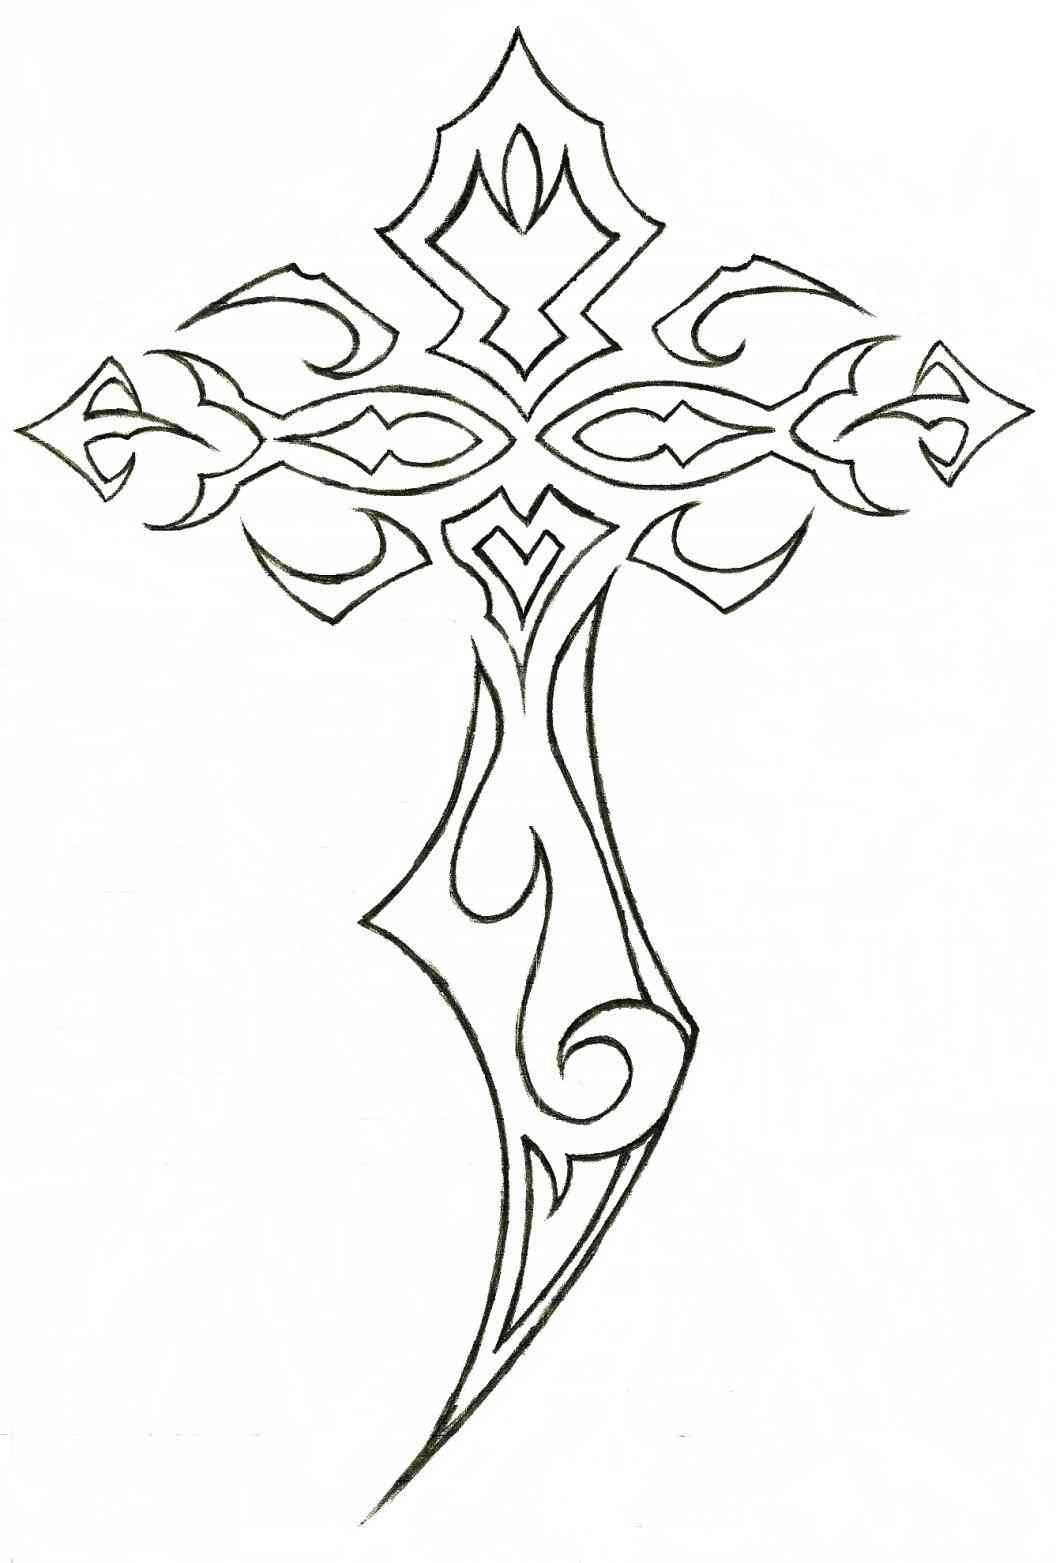 1056x1563 Cross With Crown Of Thorns Clipart 15, Cross With Crown Of Thorns